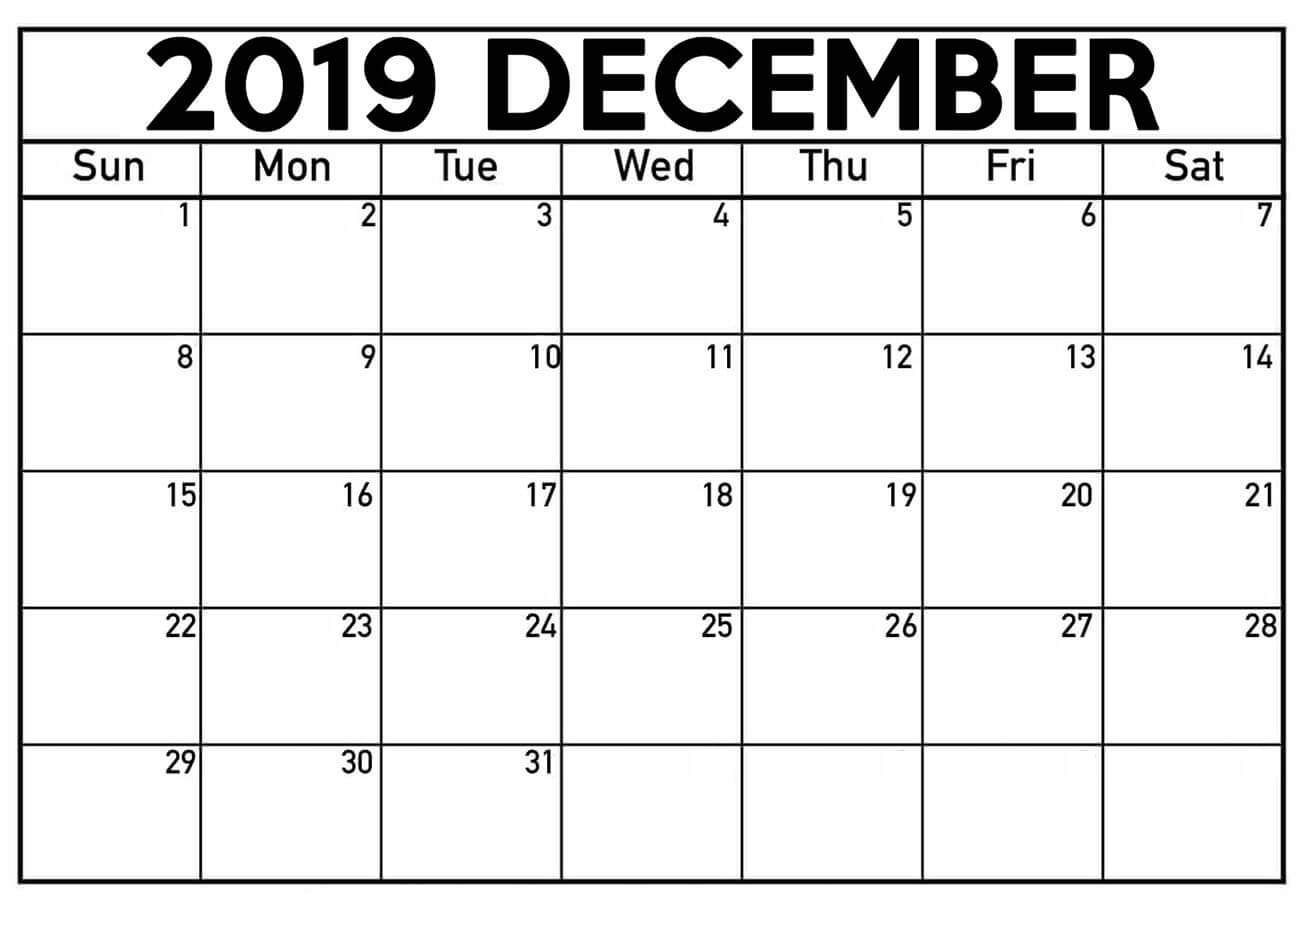 December 2019 Calendar Printable Waterproof Paper for January 2020 Waterproof Calendar